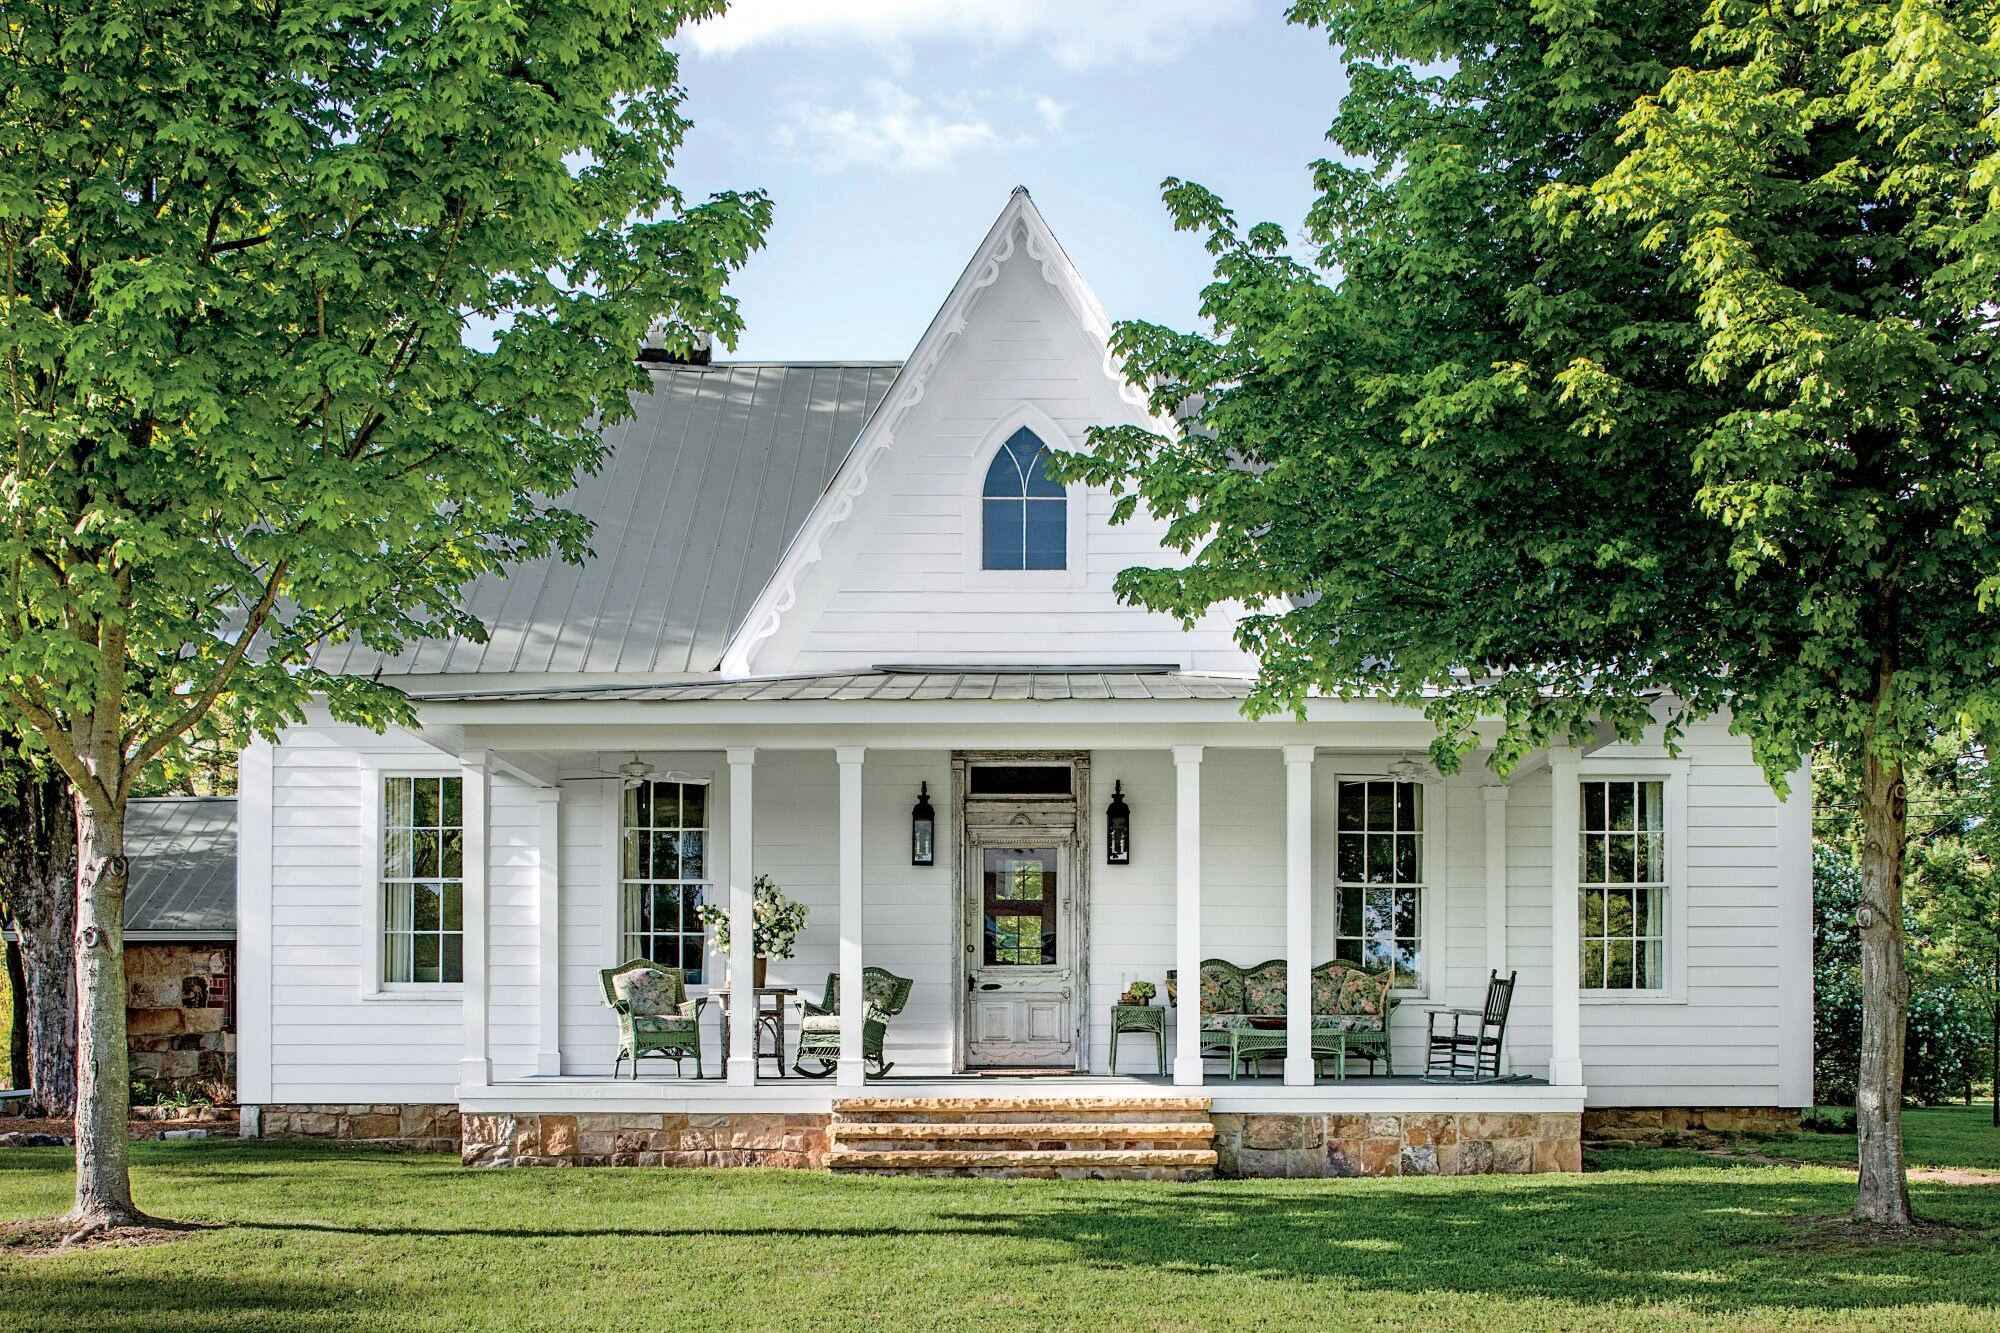 The Top Cities for Farmhouse-Style Inspiration, According to